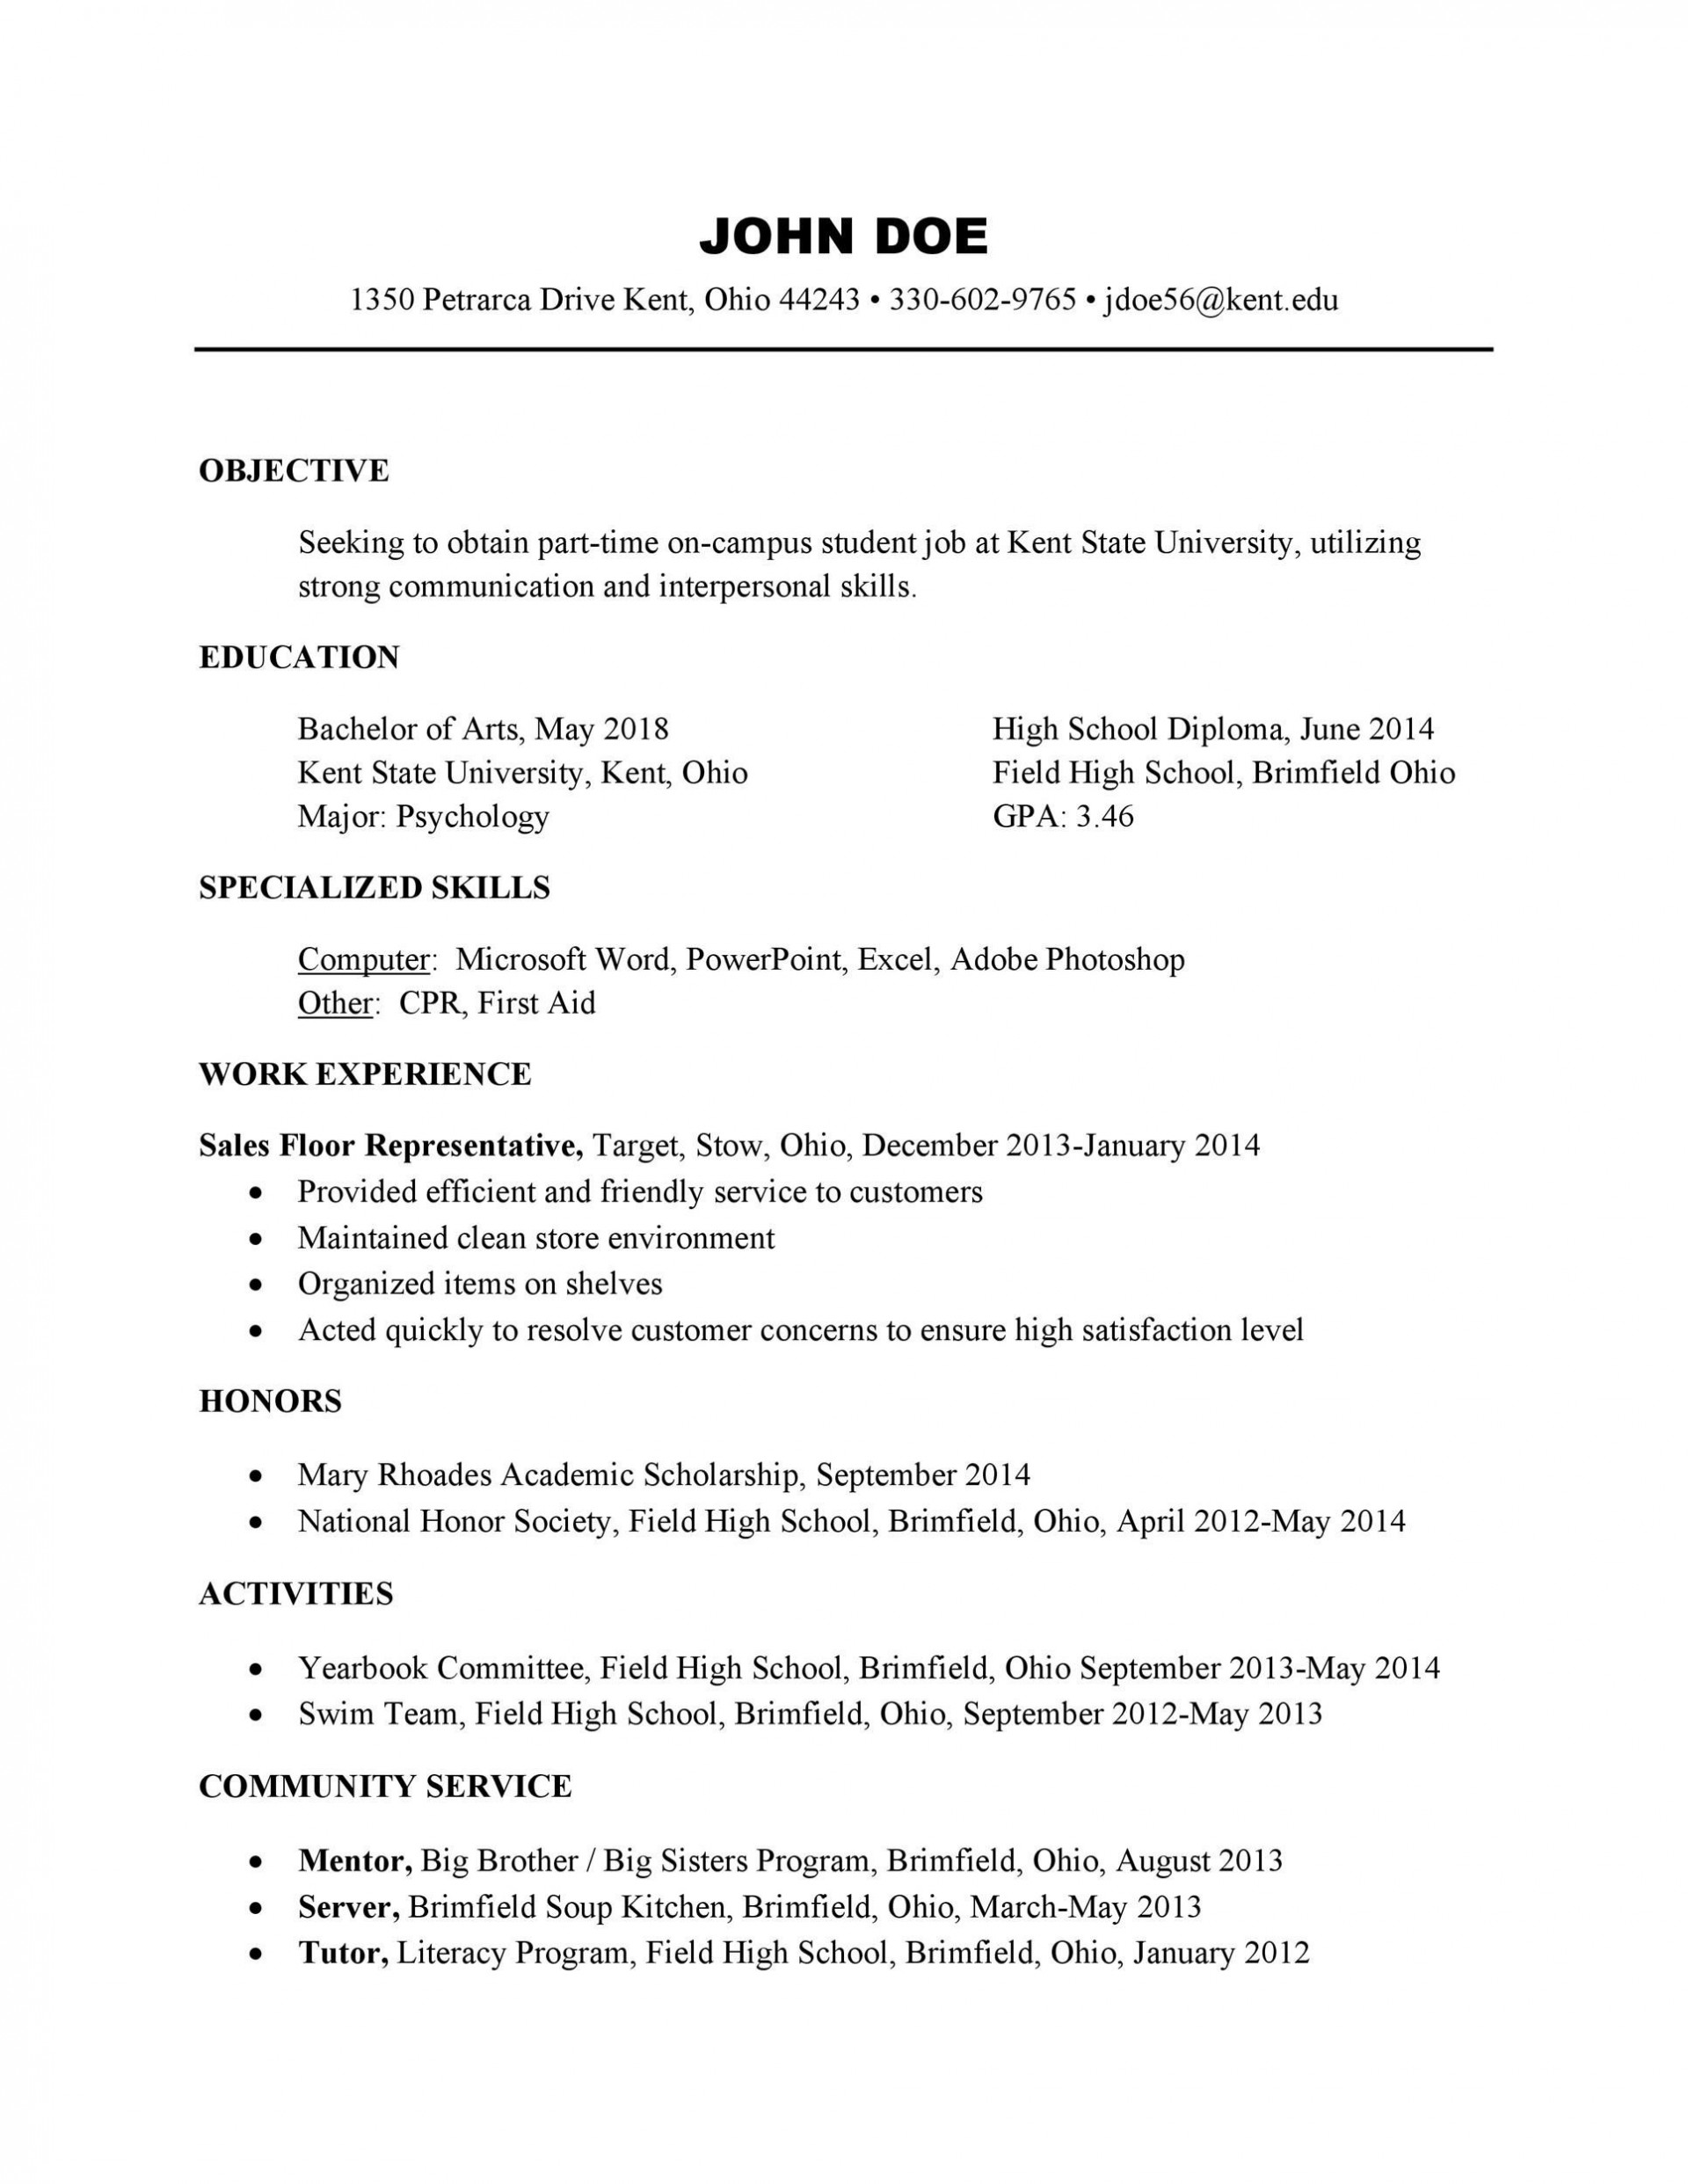 003 Marvelou Student Resume Template Word Free Highest Clarity  College Microsoft Download High School1920